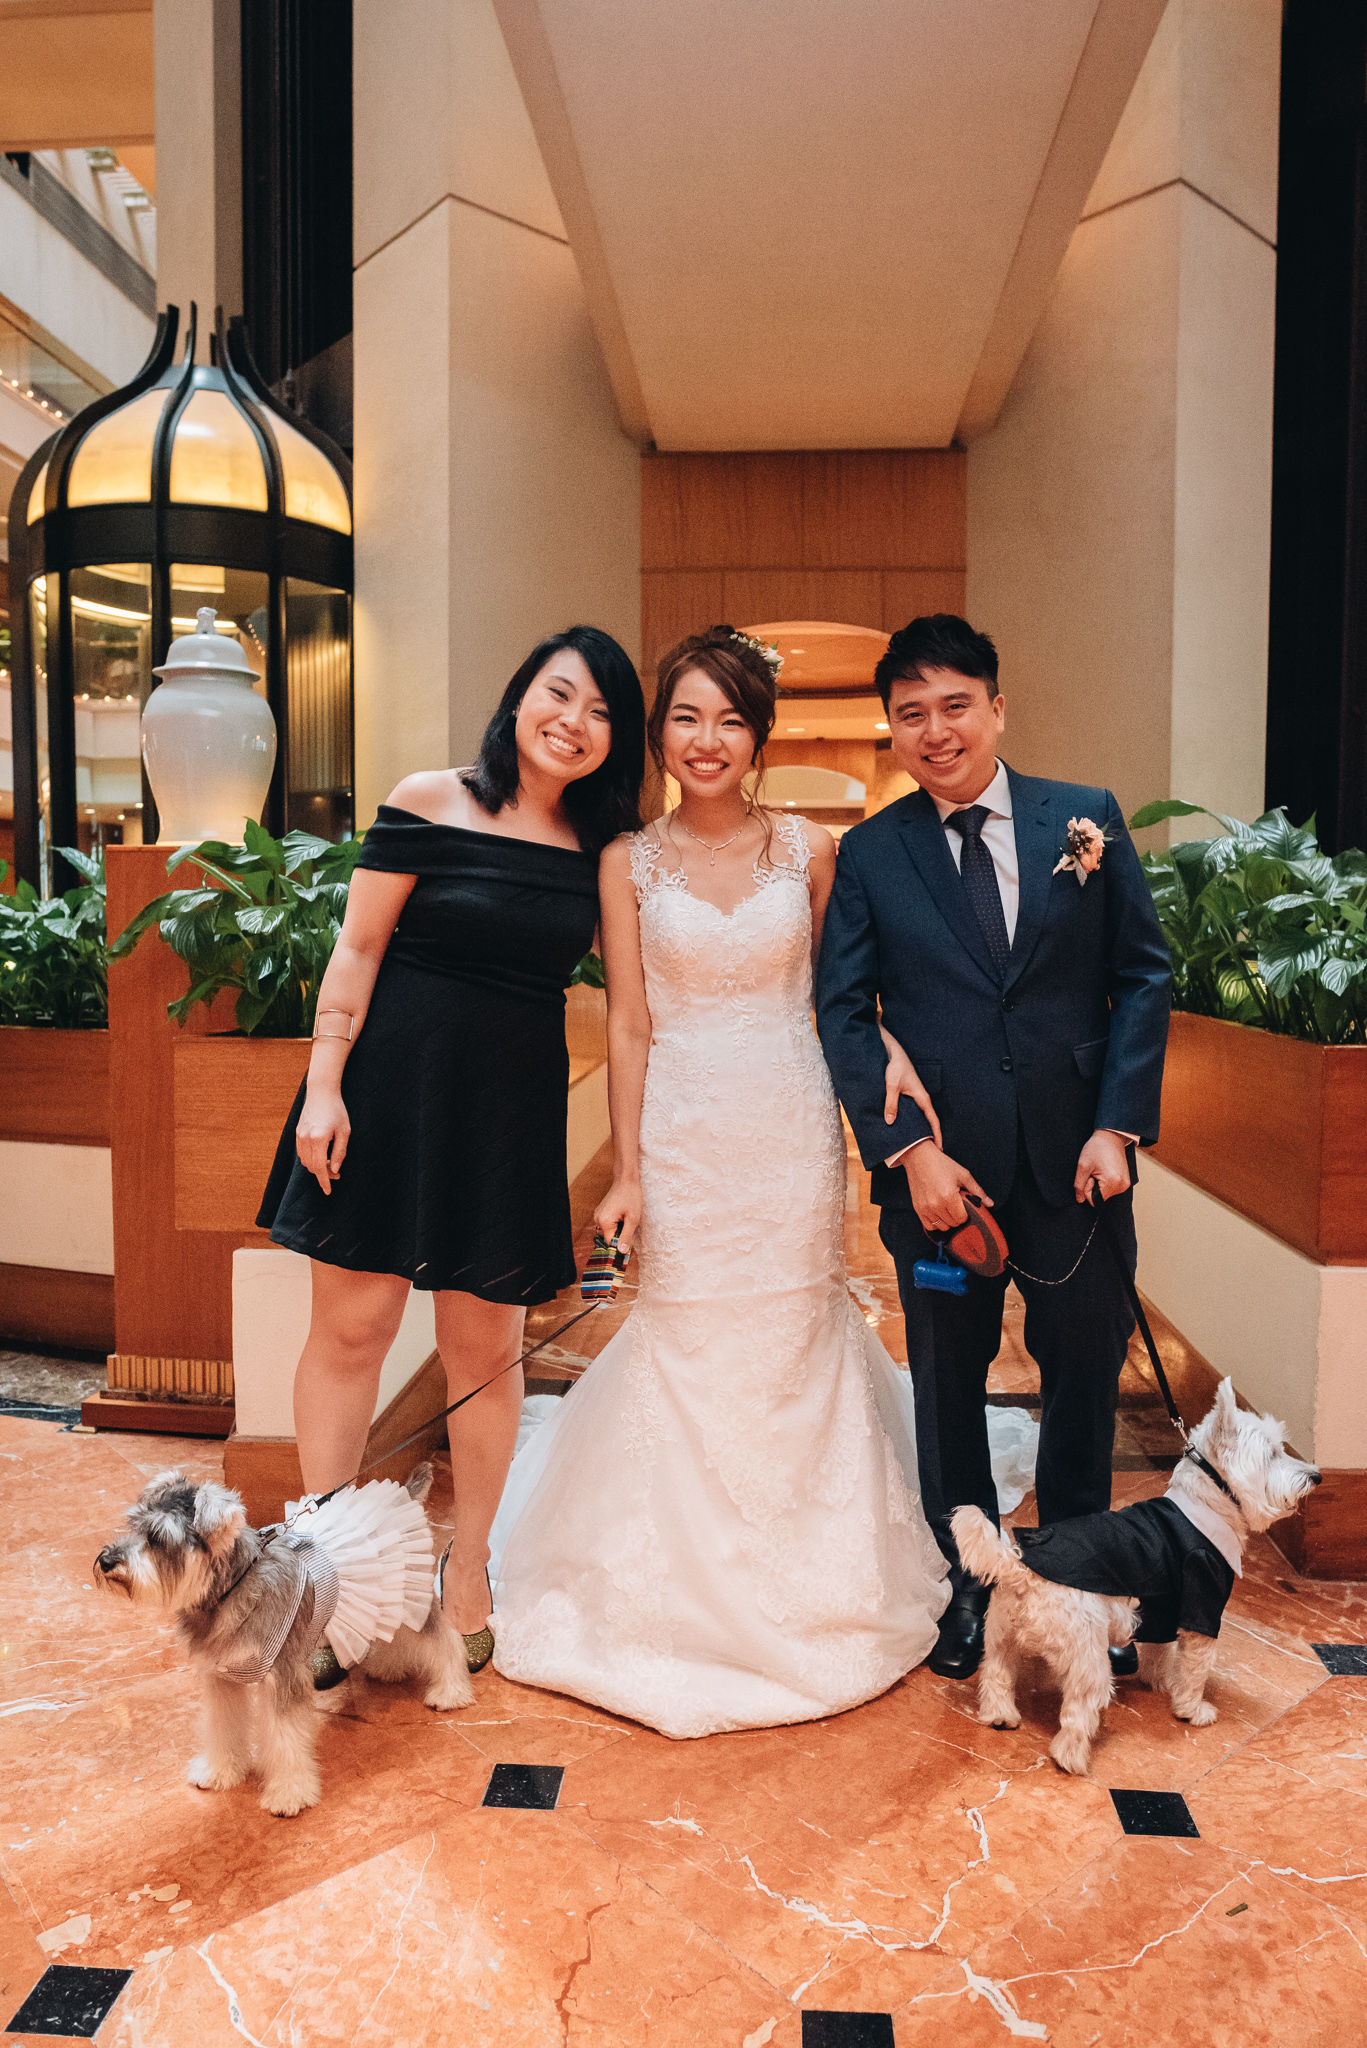 Jocelyn & Chris Wedding Day Highlights (resized for sharing) - 139.jpg